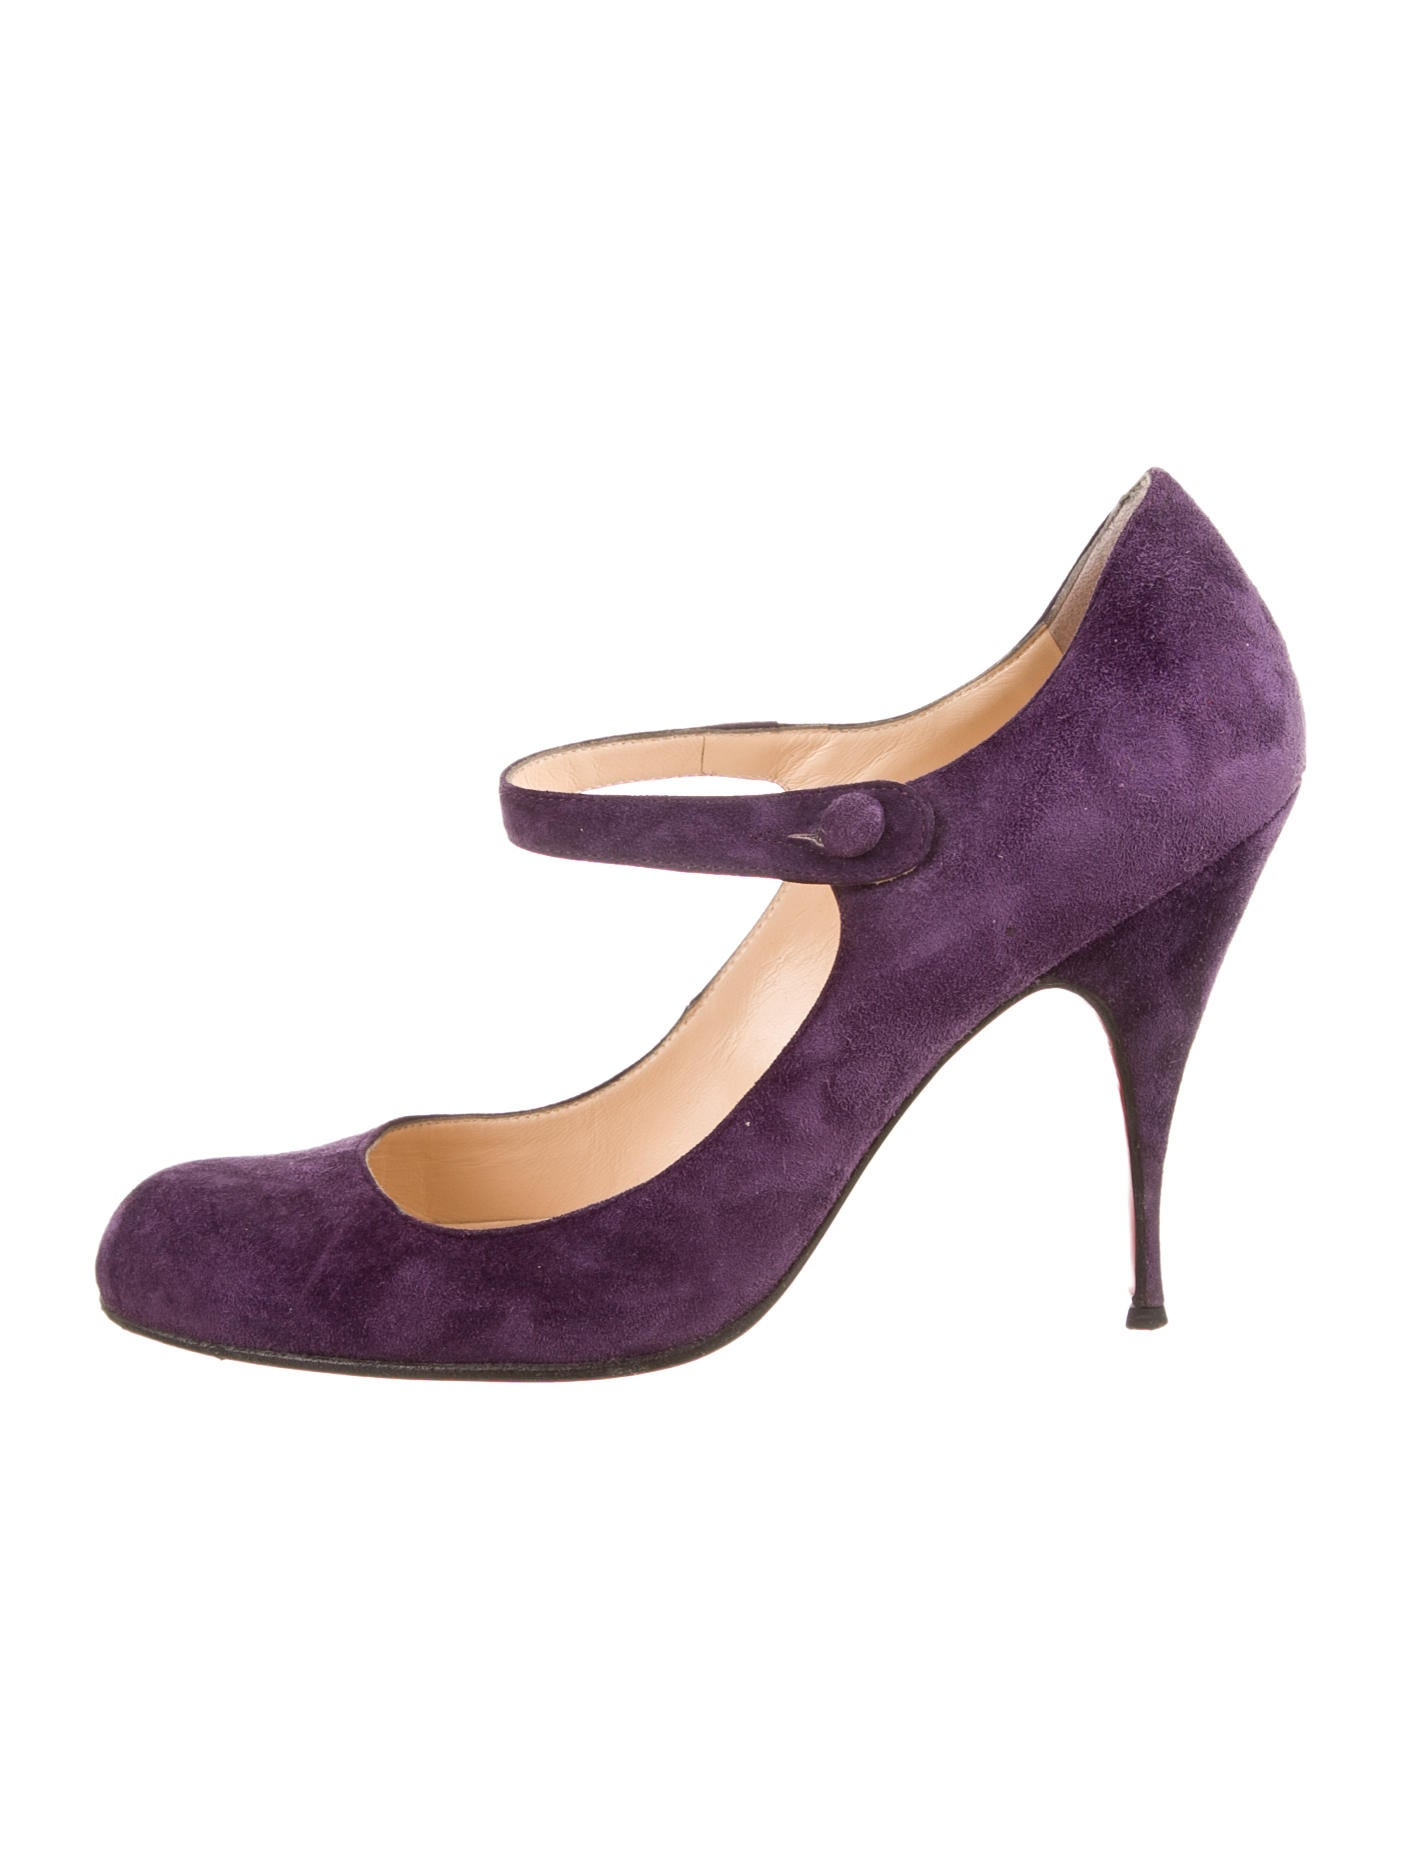 christian louboutin round-roe Mary-Jane pumps Purple suede covered ...